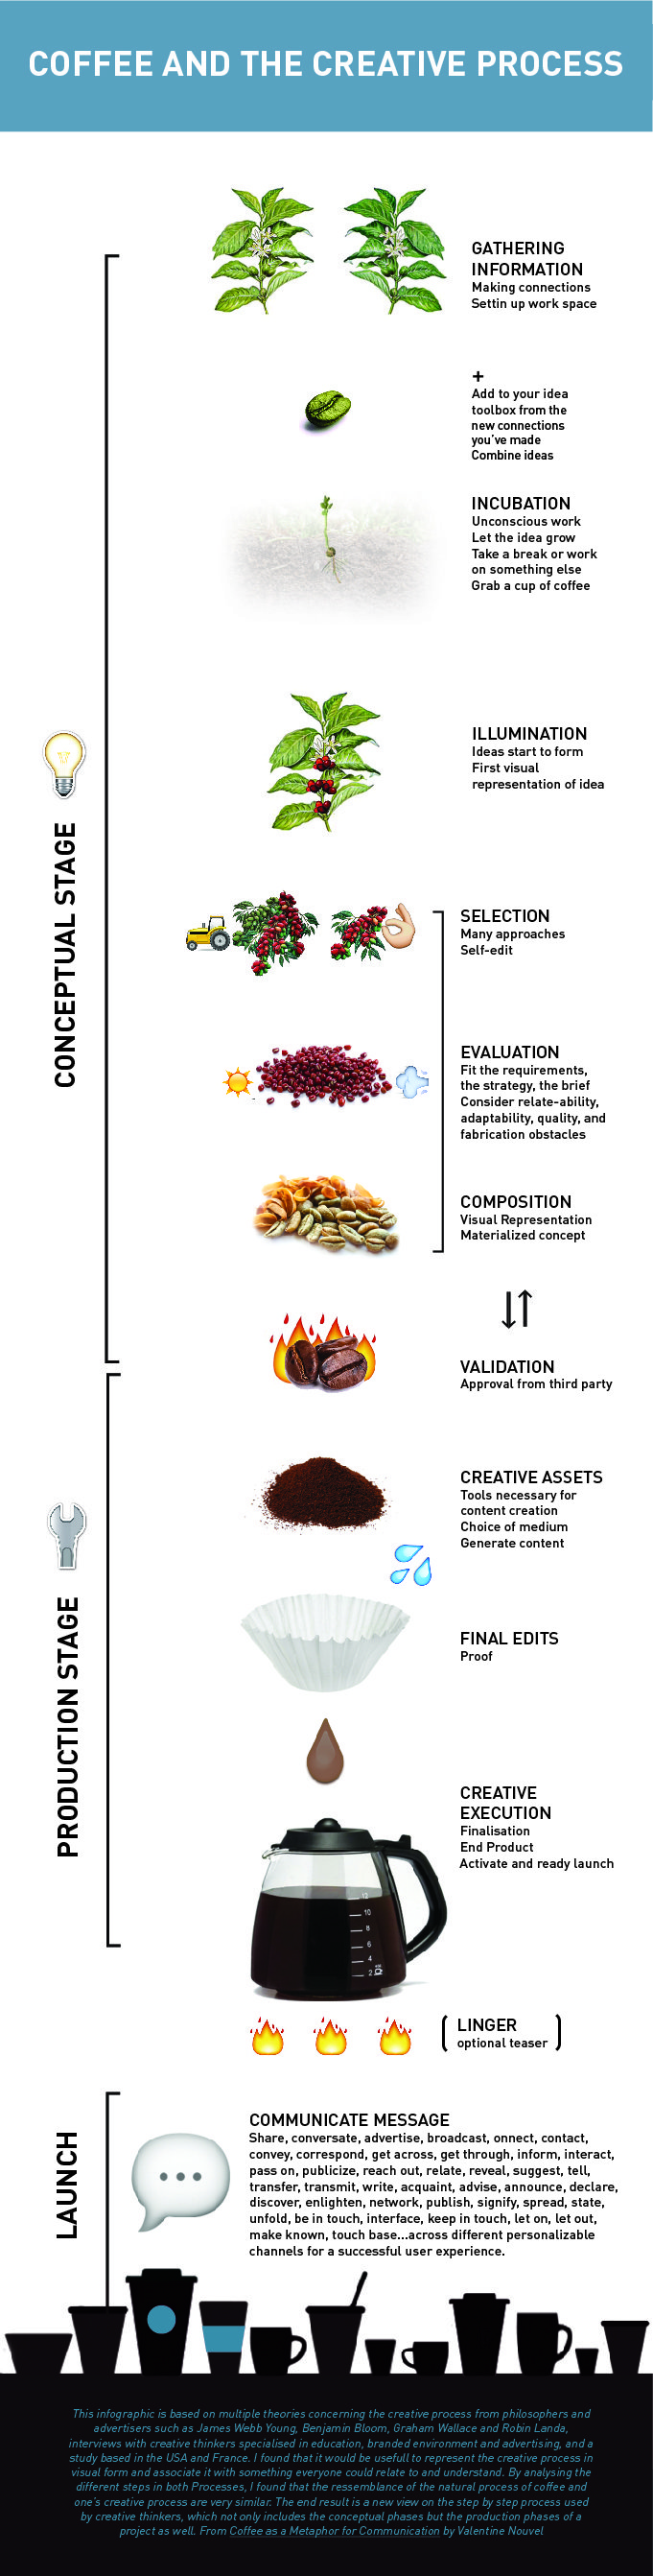 Infographic: Coffee and The Creative Design Process